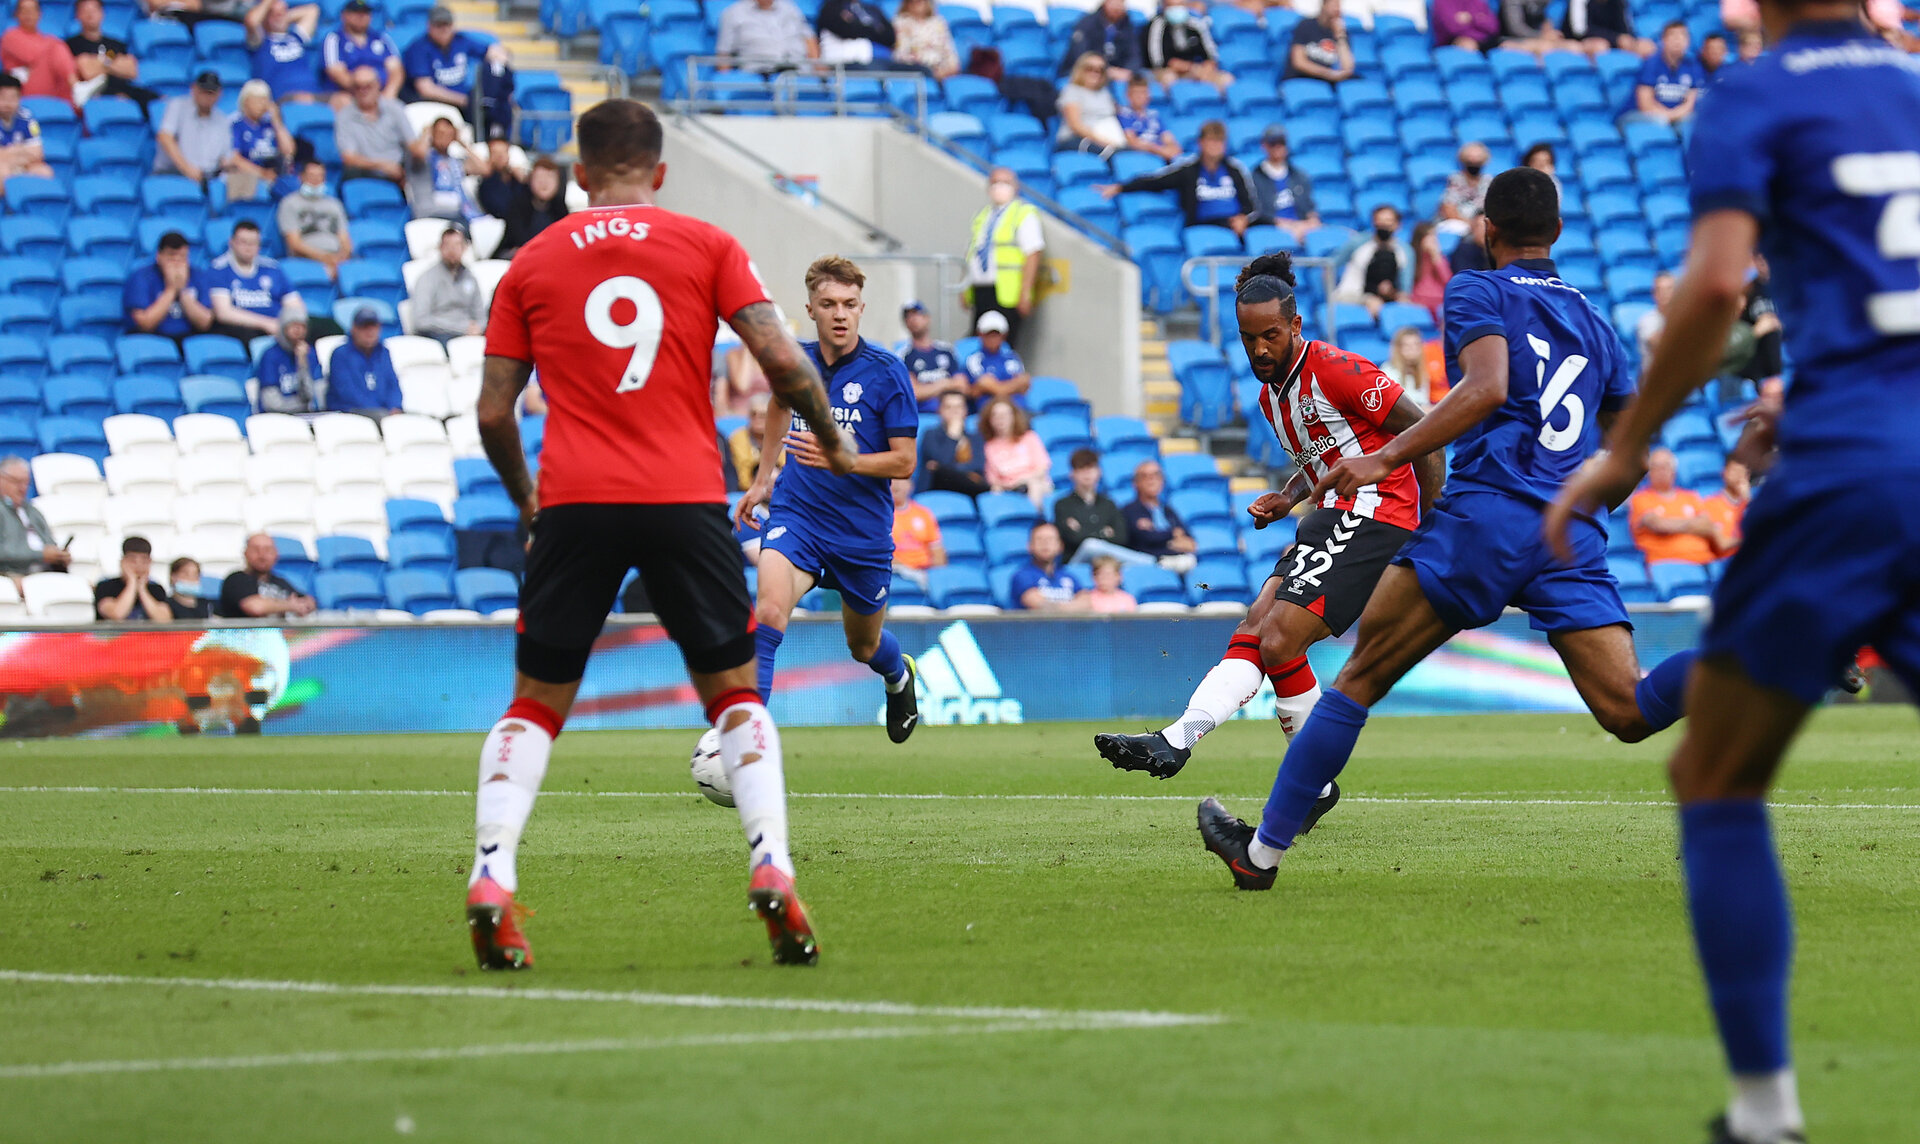 CARDIFF, WALES - JULY 27: Theo Walcott of Southampton scores the opening goal during the Pre-Season Friendly match between Cardiff City and Southampton at Cardiff City Stadium on July 27, 2021 in Cardiff, Wales. Photo by Matt Watson/Southampton FC via Getty Images